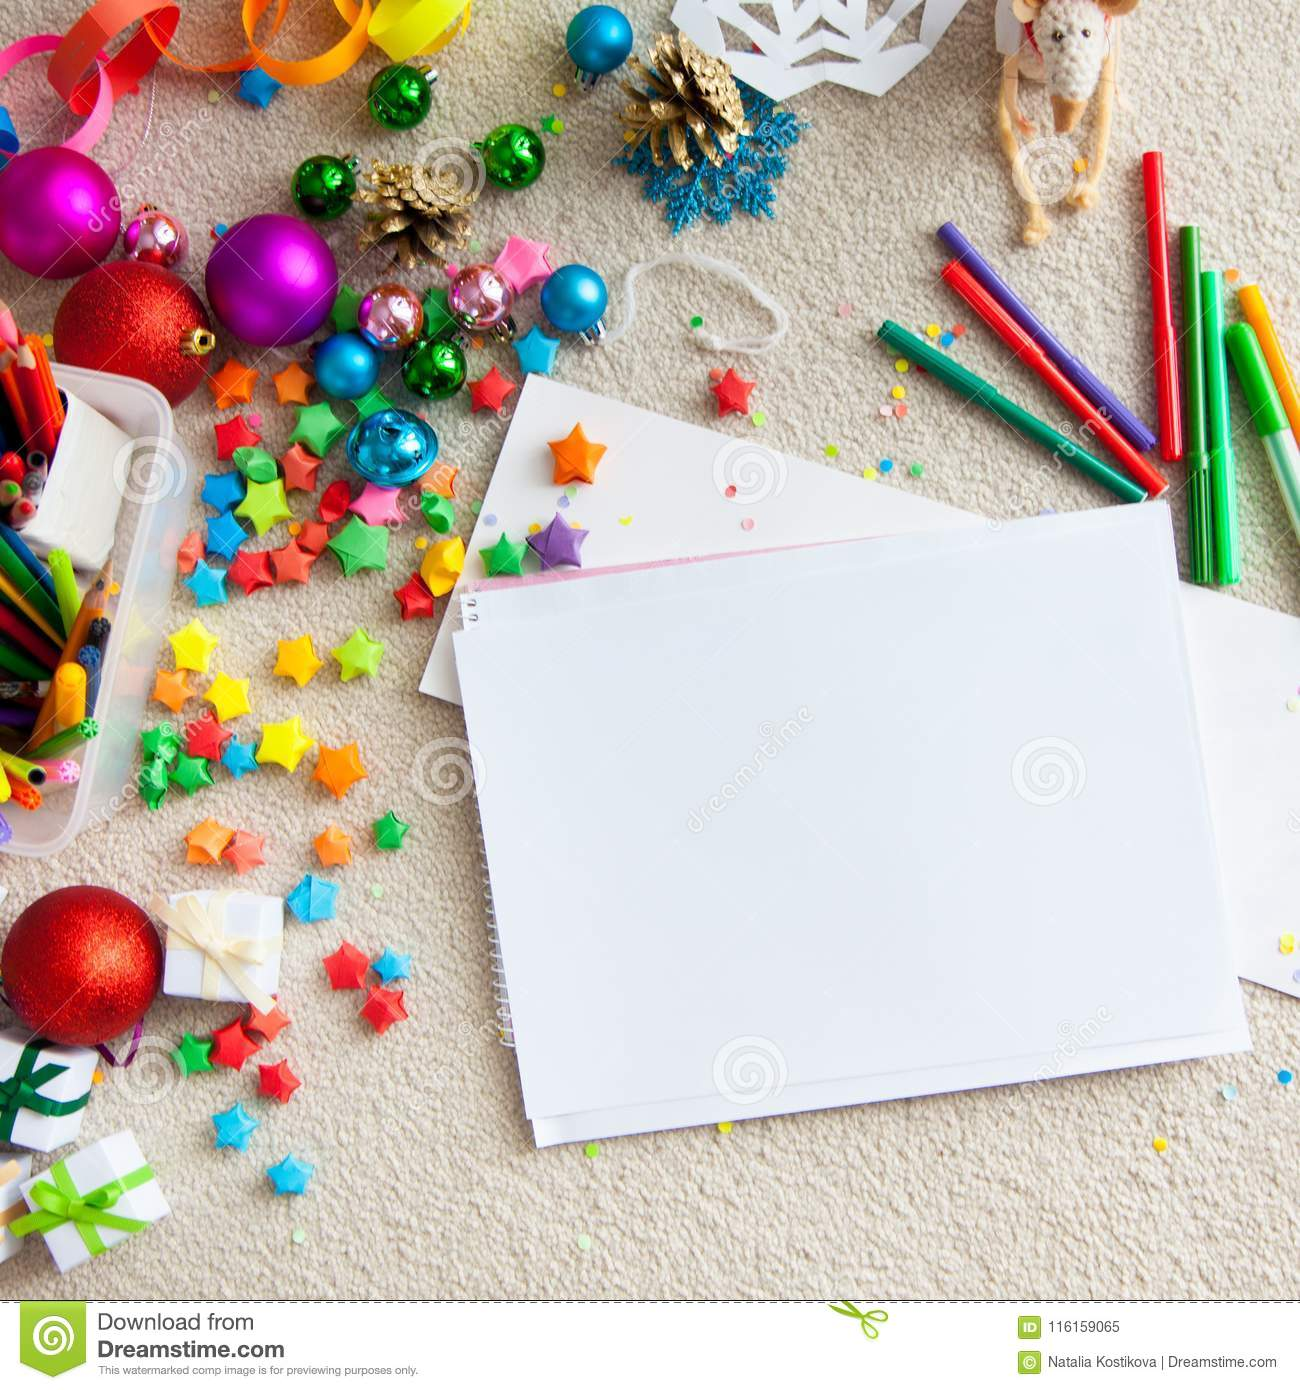 a boy draws a christmas tree childs drawing christmas the child lies on the floor and draws in a notebook with white paper - Office Supply Christmas Decorations